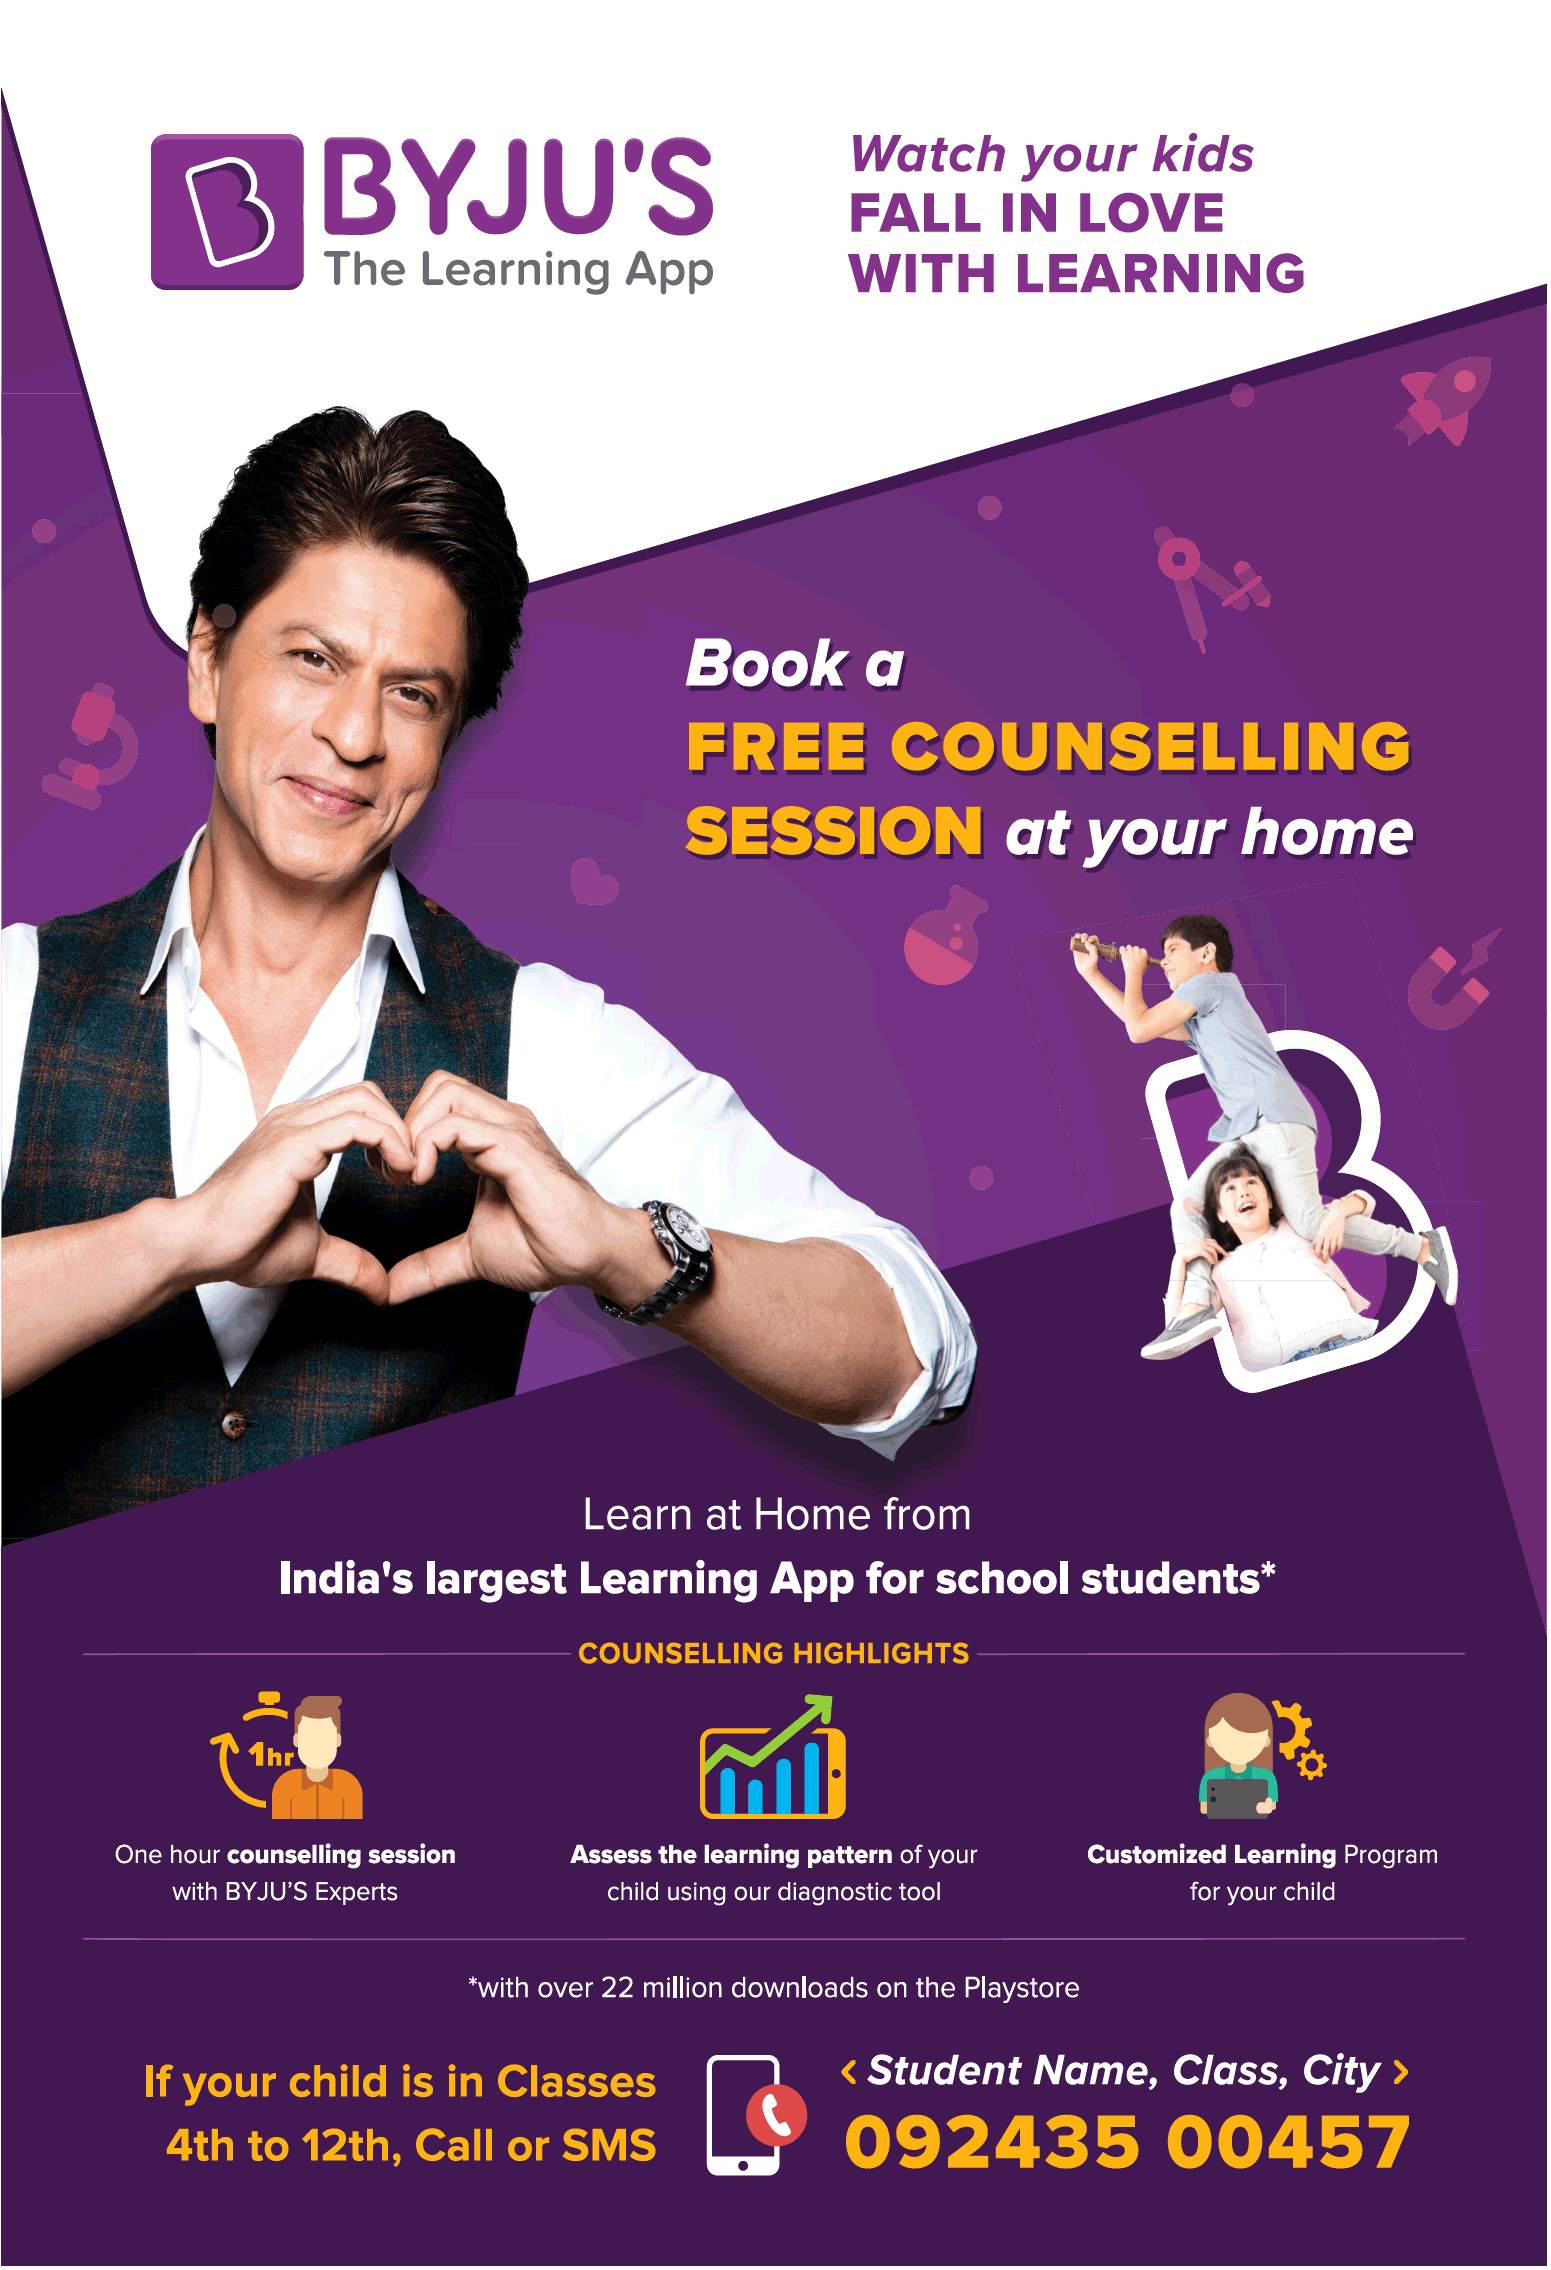 Byjus Learning App Fall In Love With Learning Ad - Advert Gallery